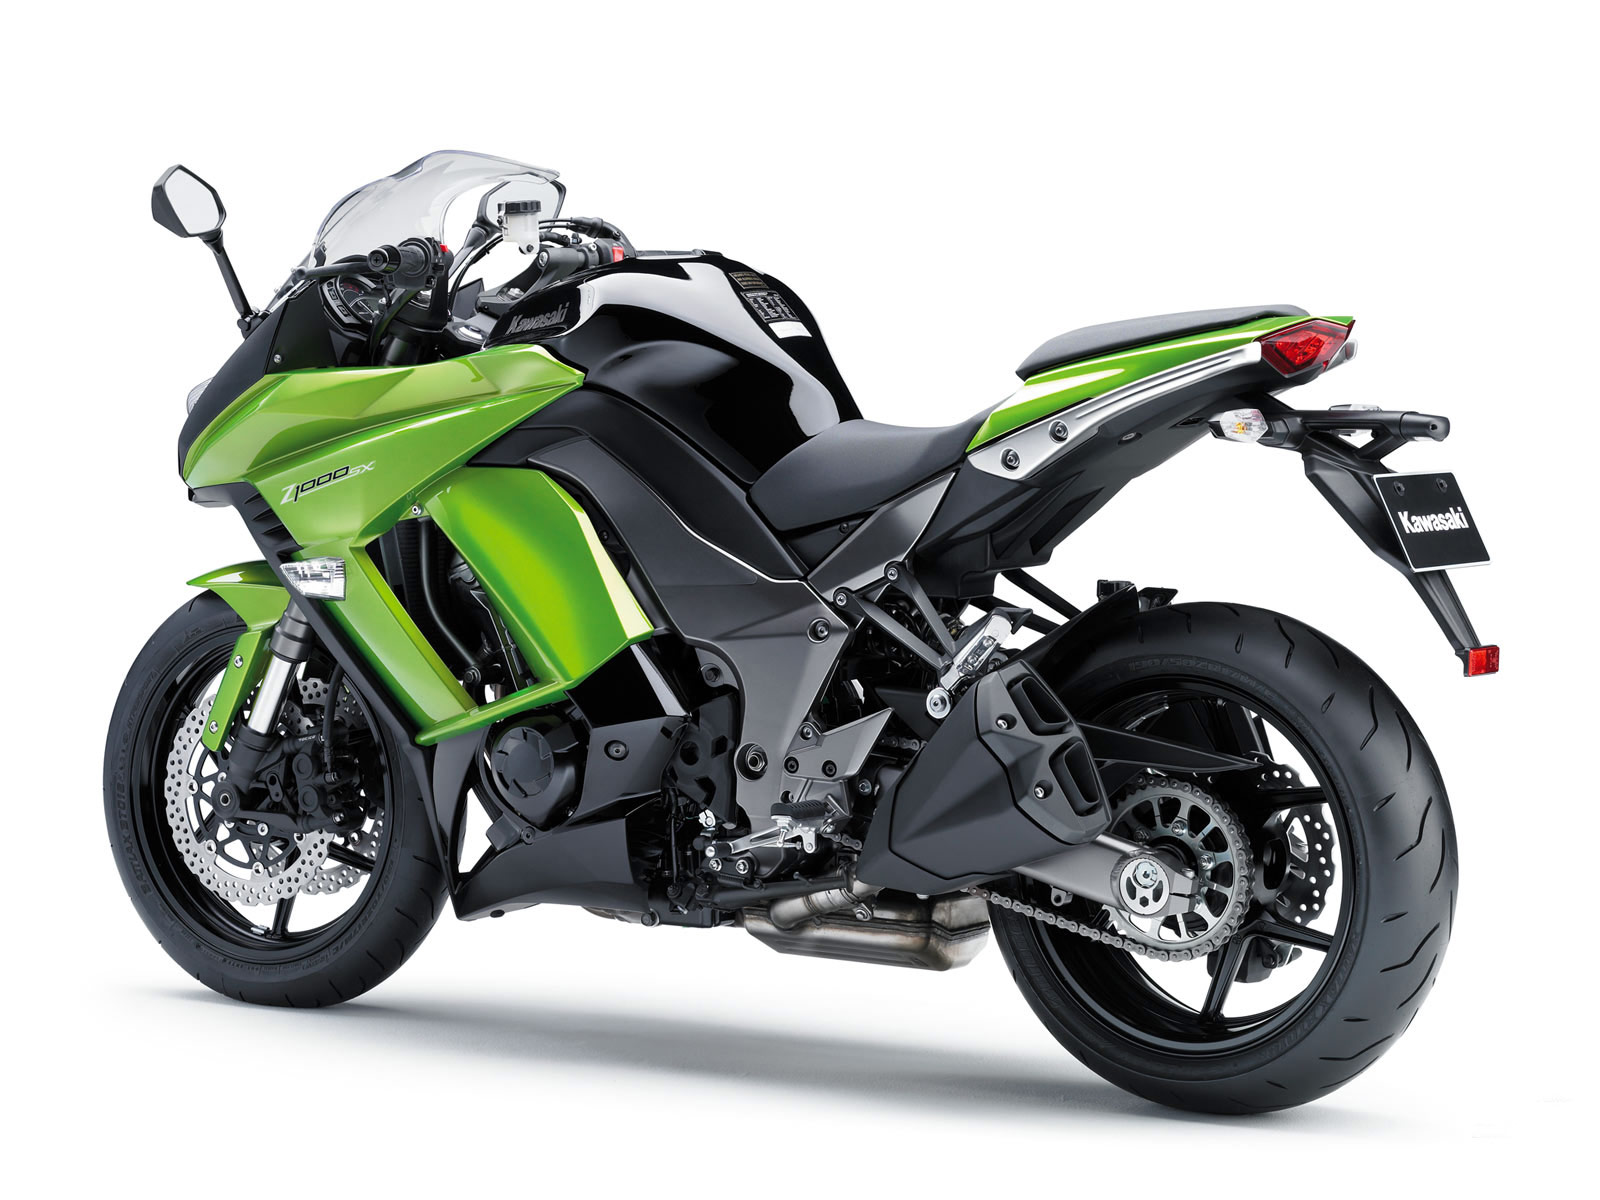 2011 kawasaki z 1000 sx motorcycle wallpaper